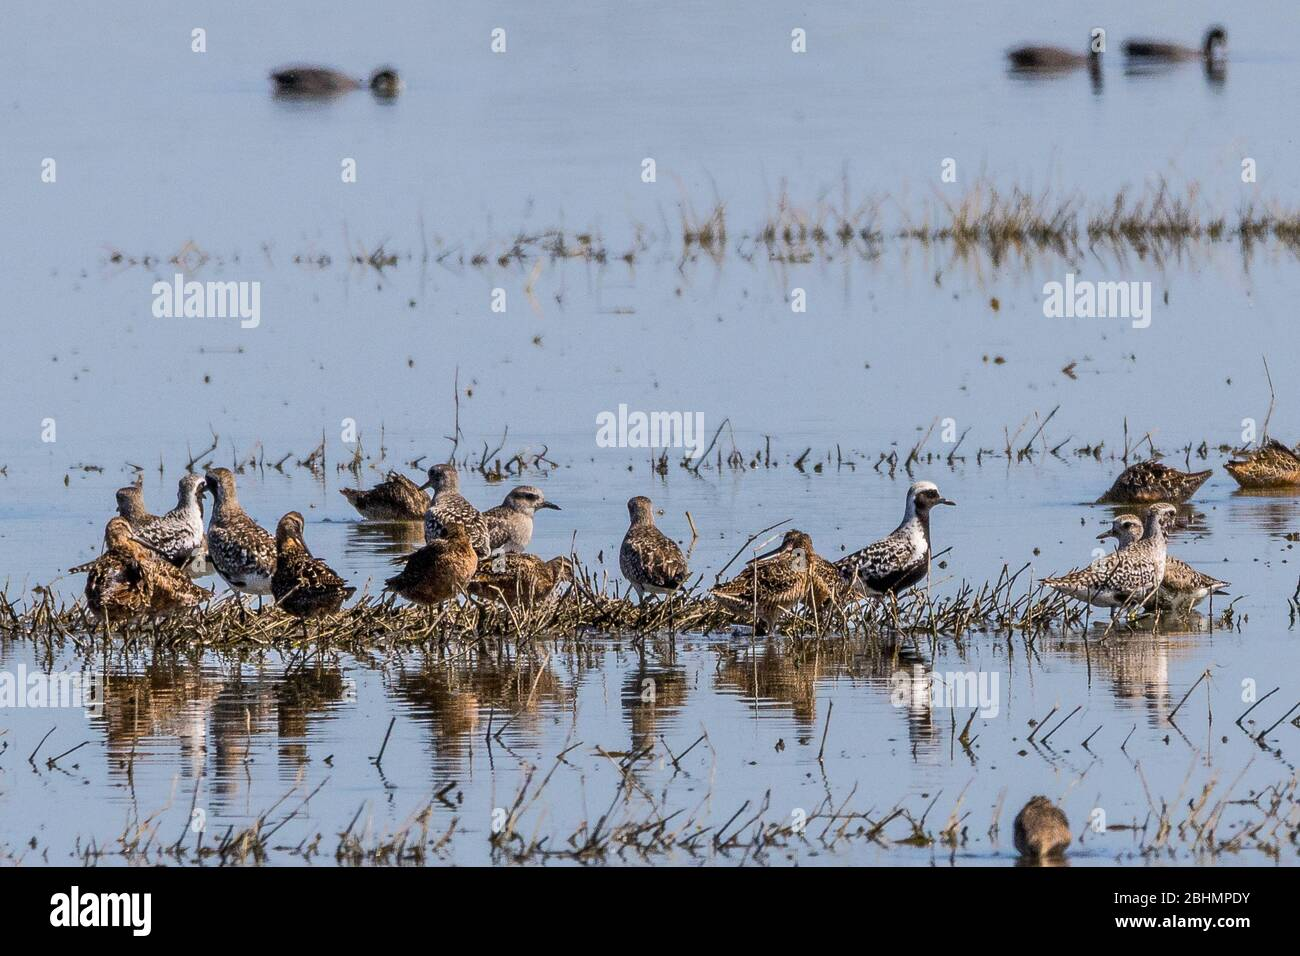 shorebirds-take-flight-at-the-merced-national-wildlife-refuge-in-the-central-valley-of-california-2BHMPDY.jpg